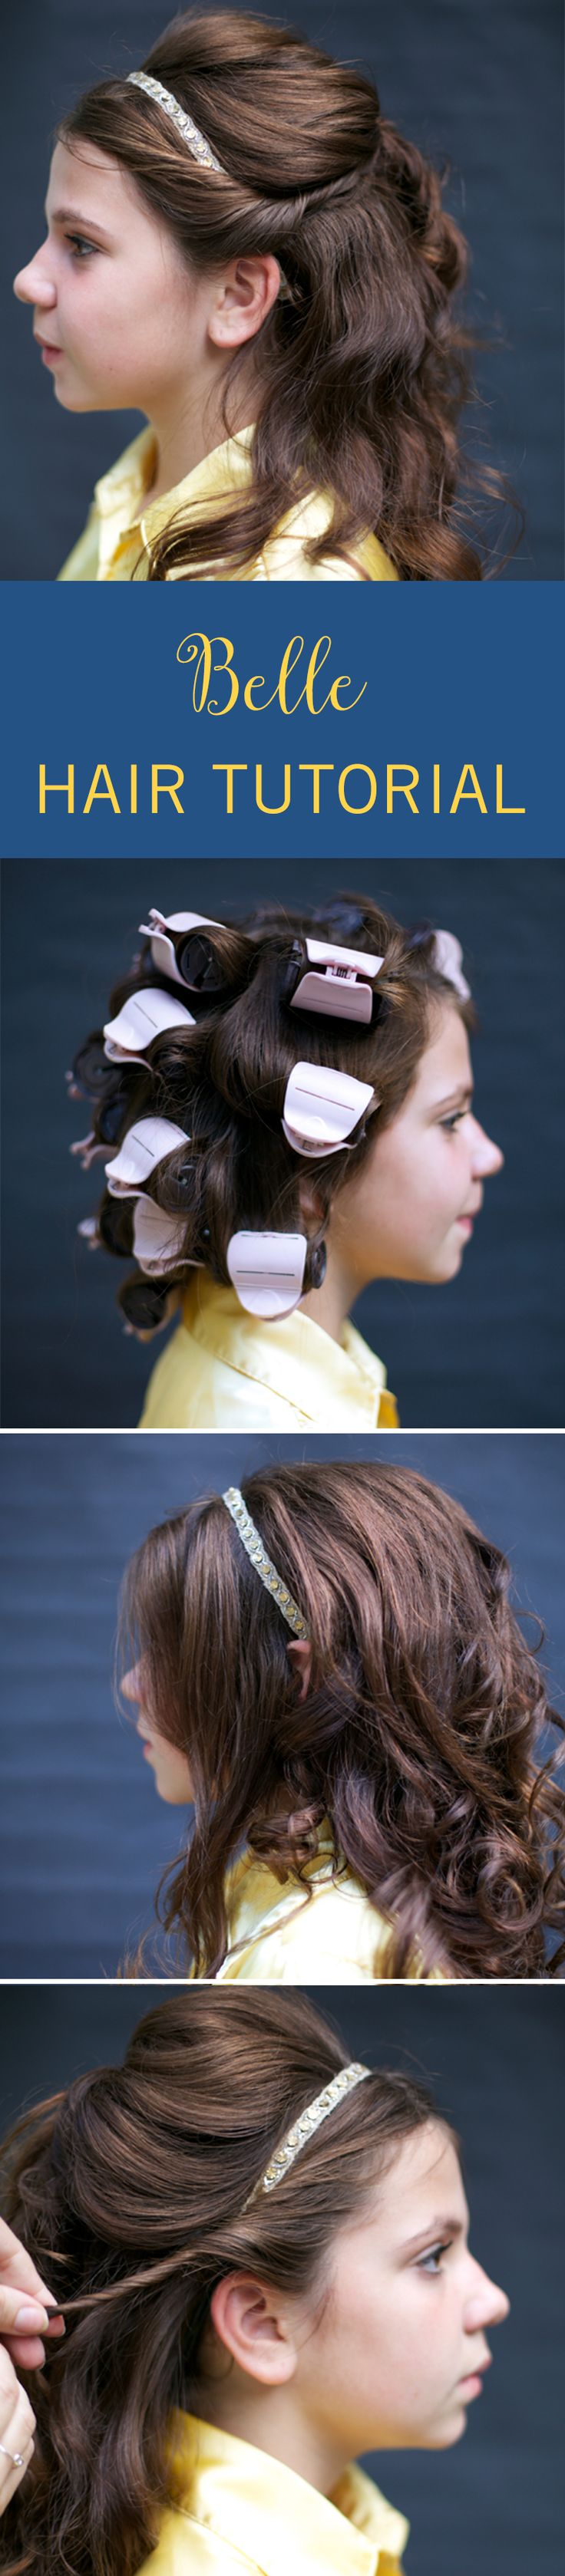 Turn your little princess into the Belle of the ball with this simple hair tutorial. This Beauty and the Beast inspired hairstyle is perfect for Halloween, or for any day your little girl wants to feel even more like a princess than usual. Click for the Disney hair tutorial. #HairTutorial